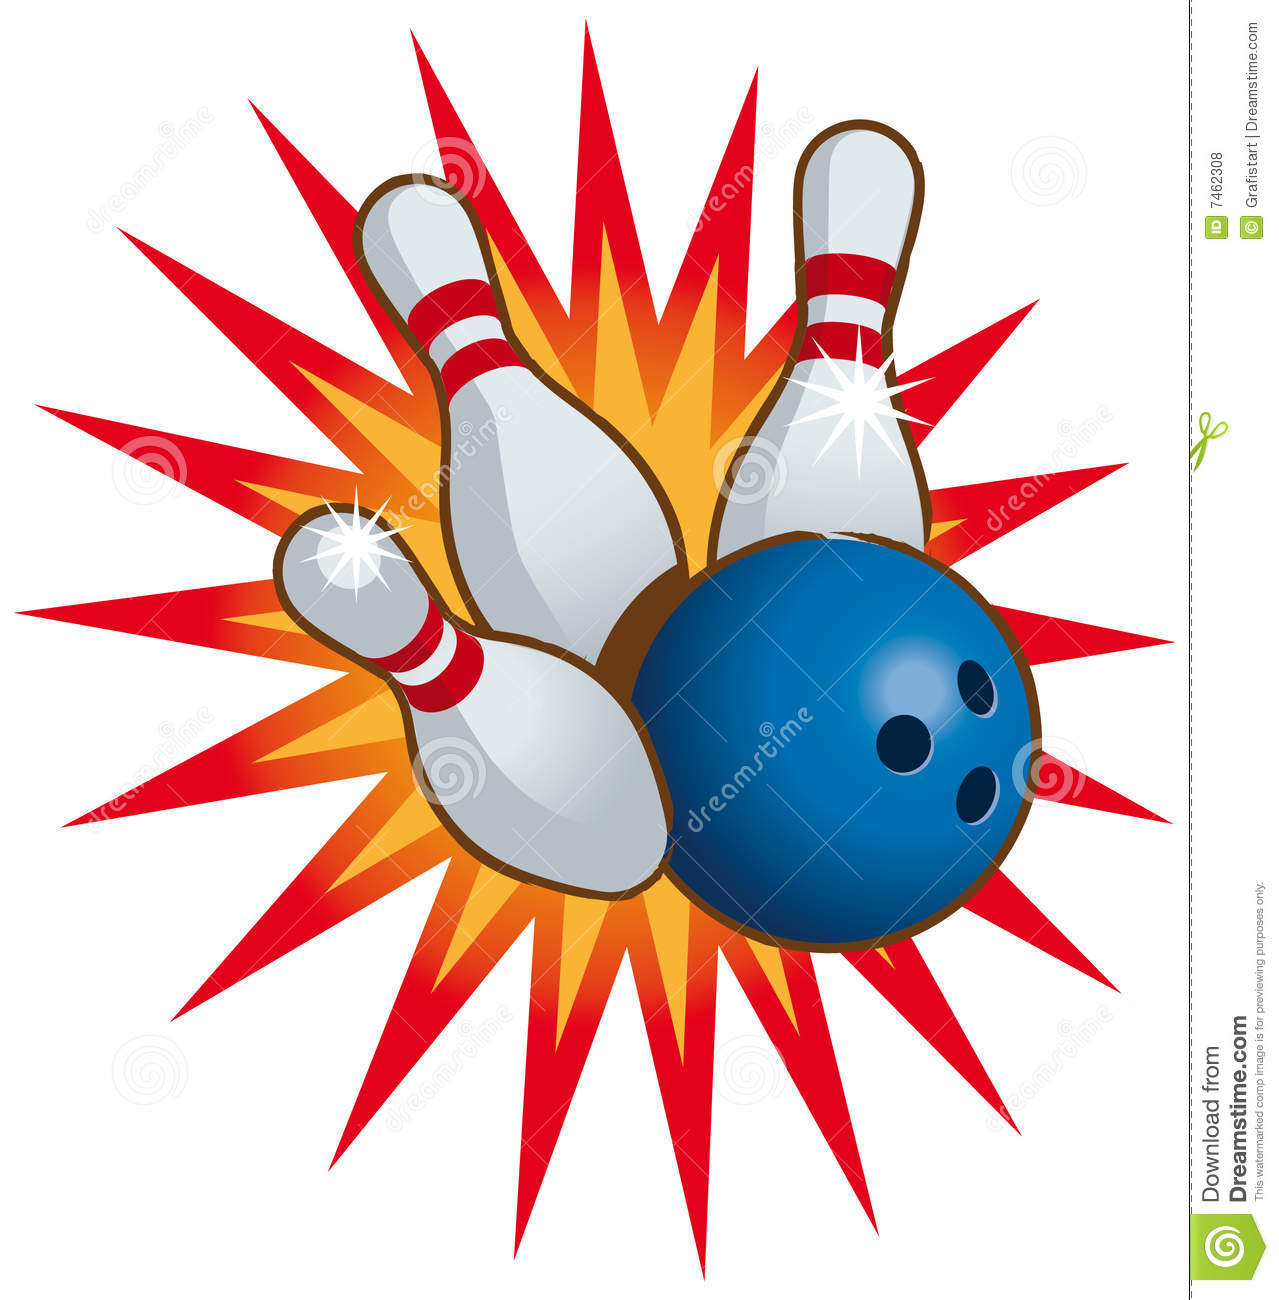 Bowling ball and pin clipart 5 » Clipart Station.